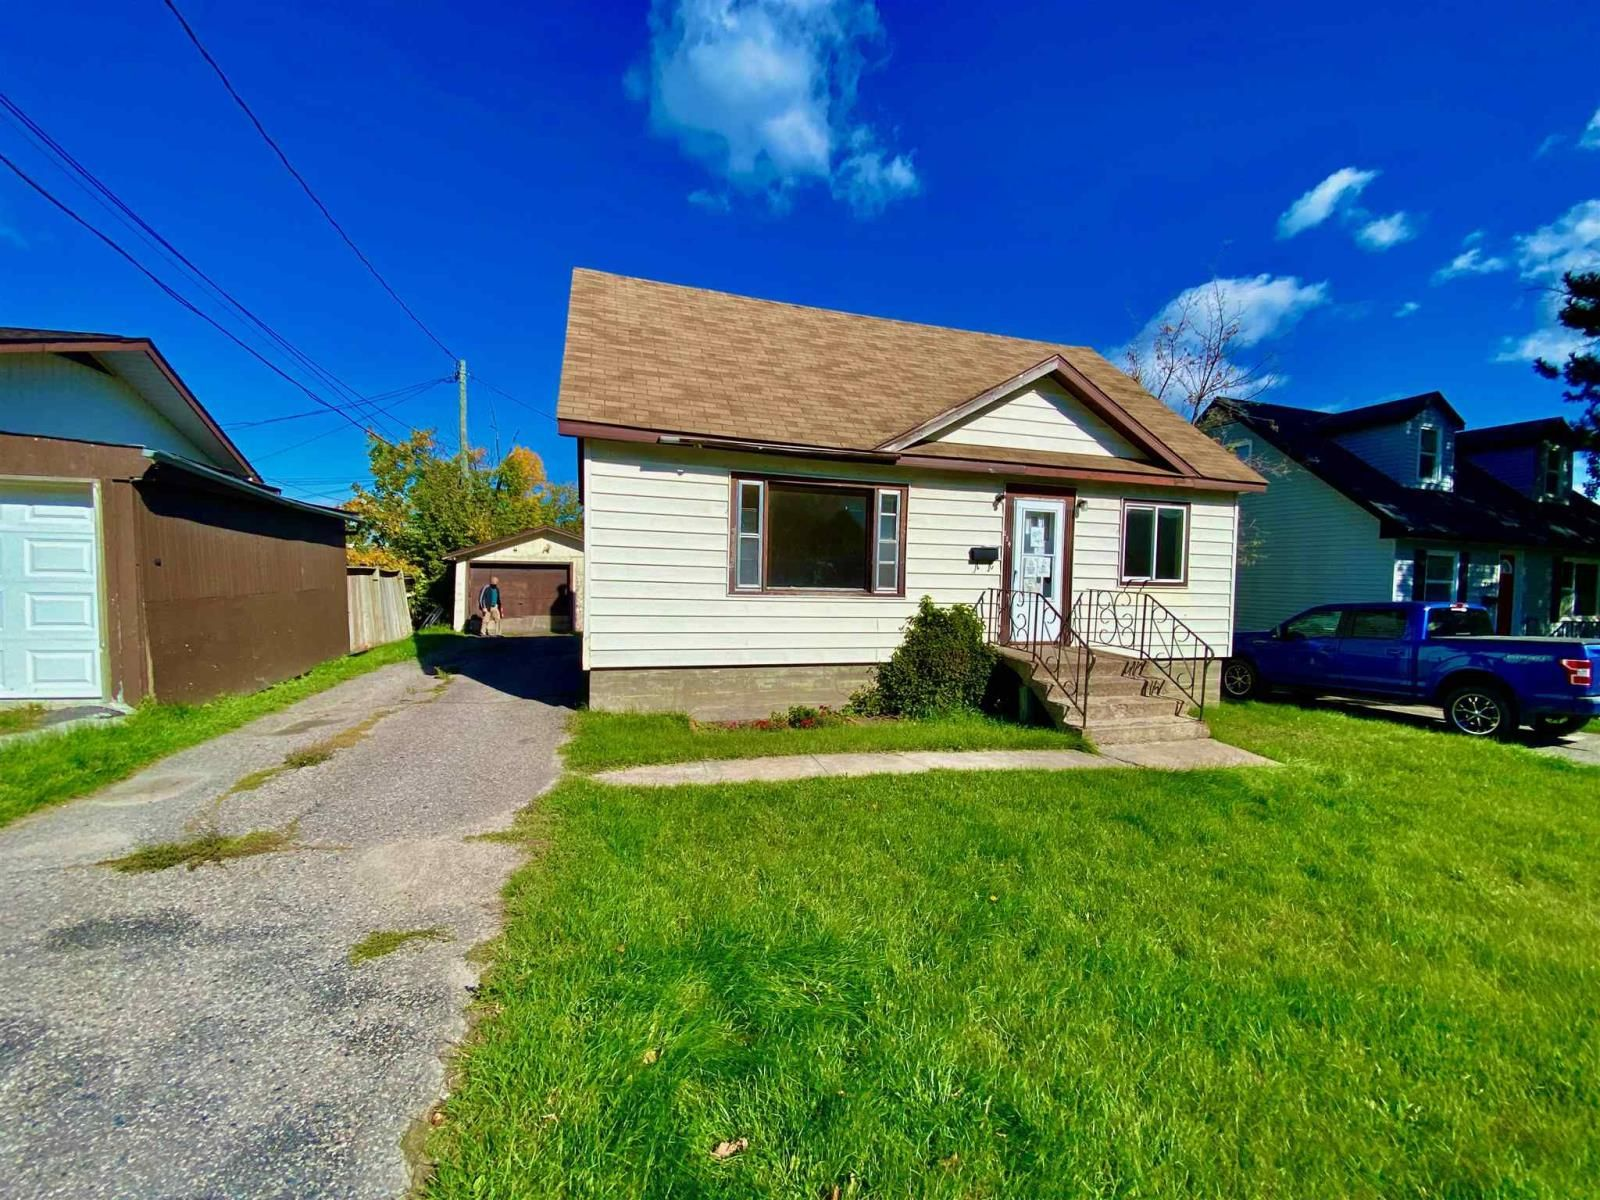 Main Photo: 214 Fifth Street South in KENORA: House for sale : MLS®# TB213005